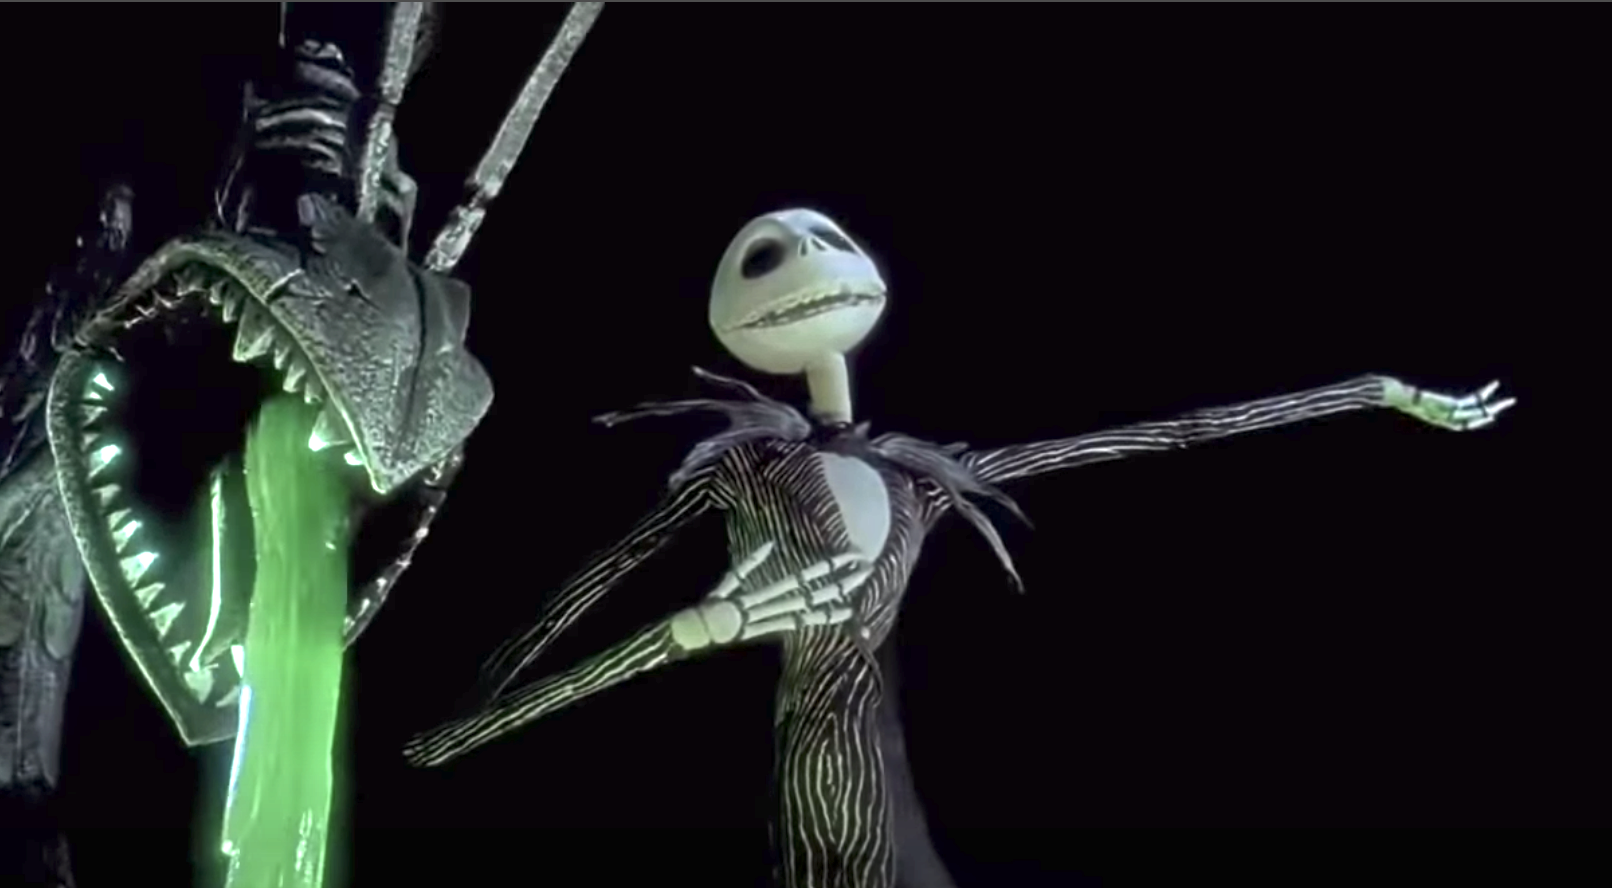 Jack Skellington singing out to the townspeople